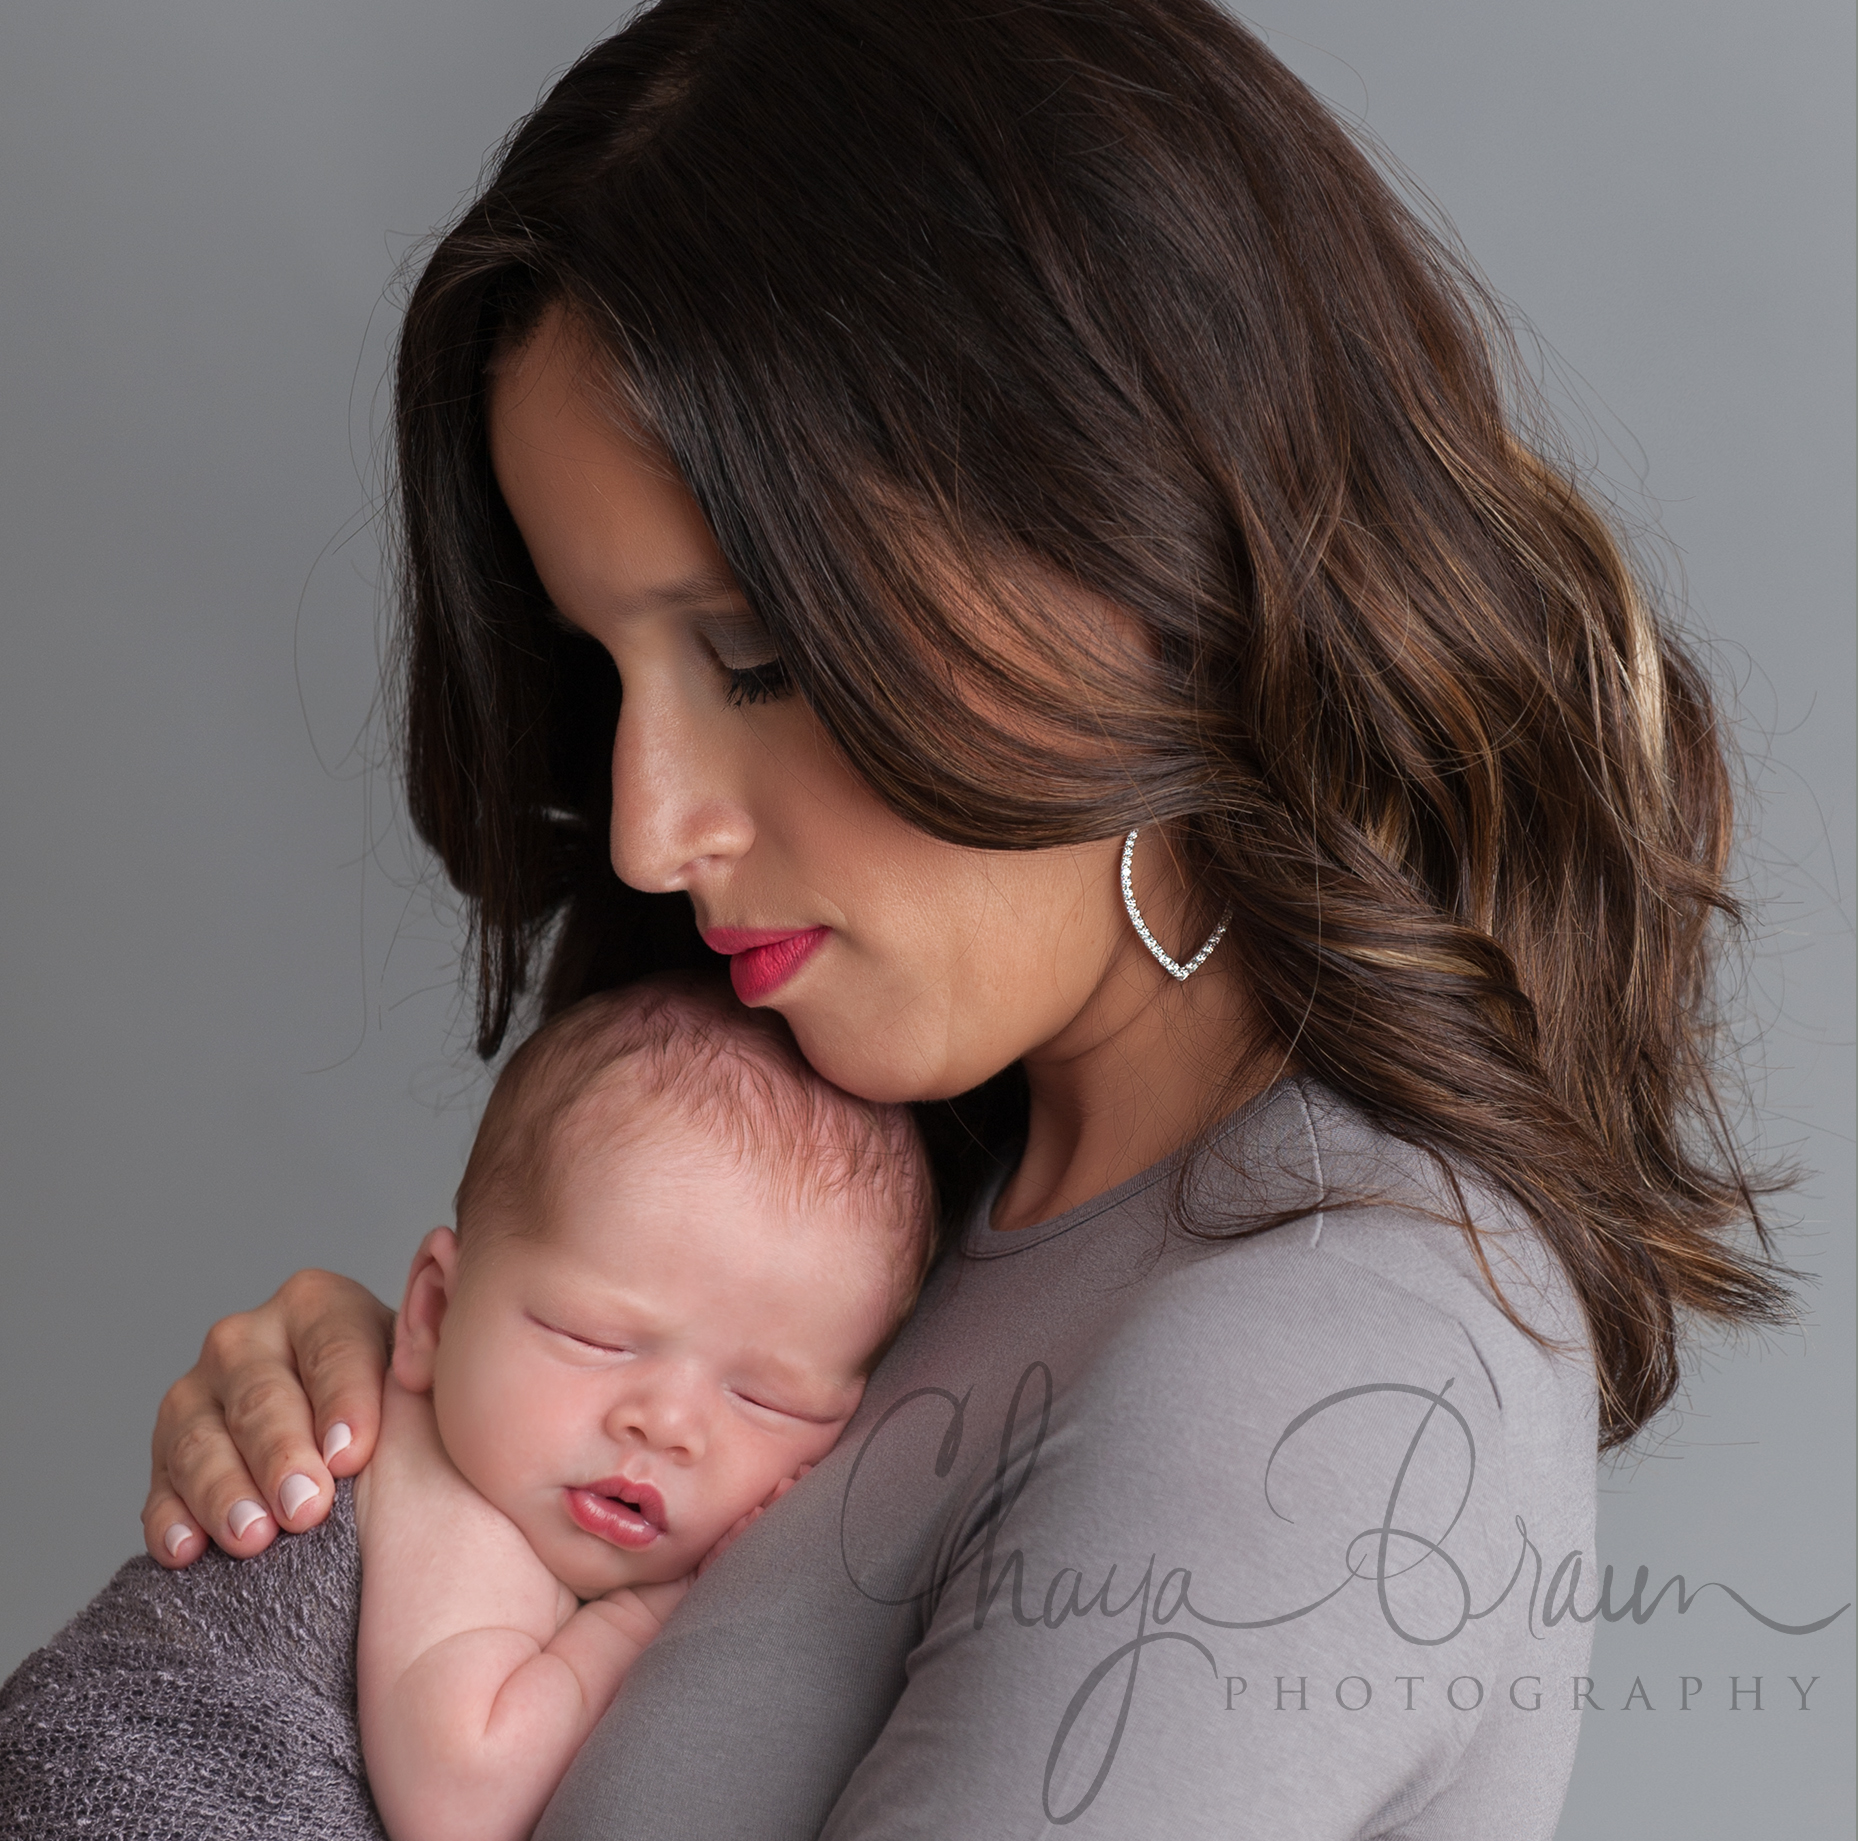 mother and newborn baby portrait